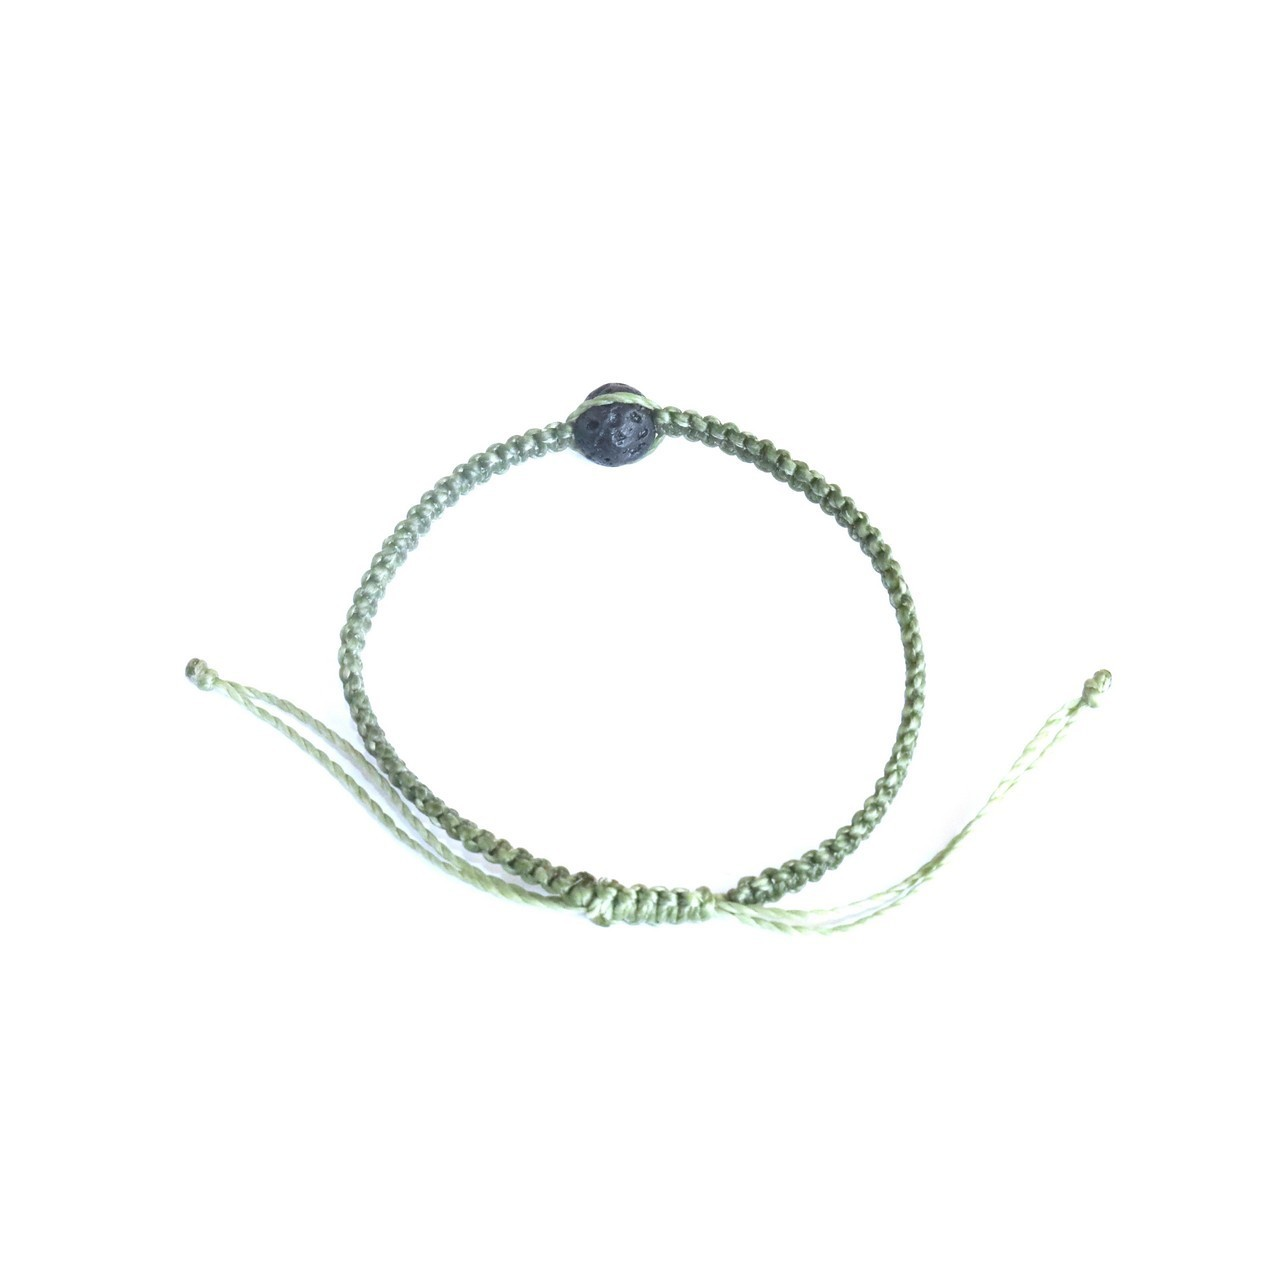 Real Sprout Diffuser Bracelet